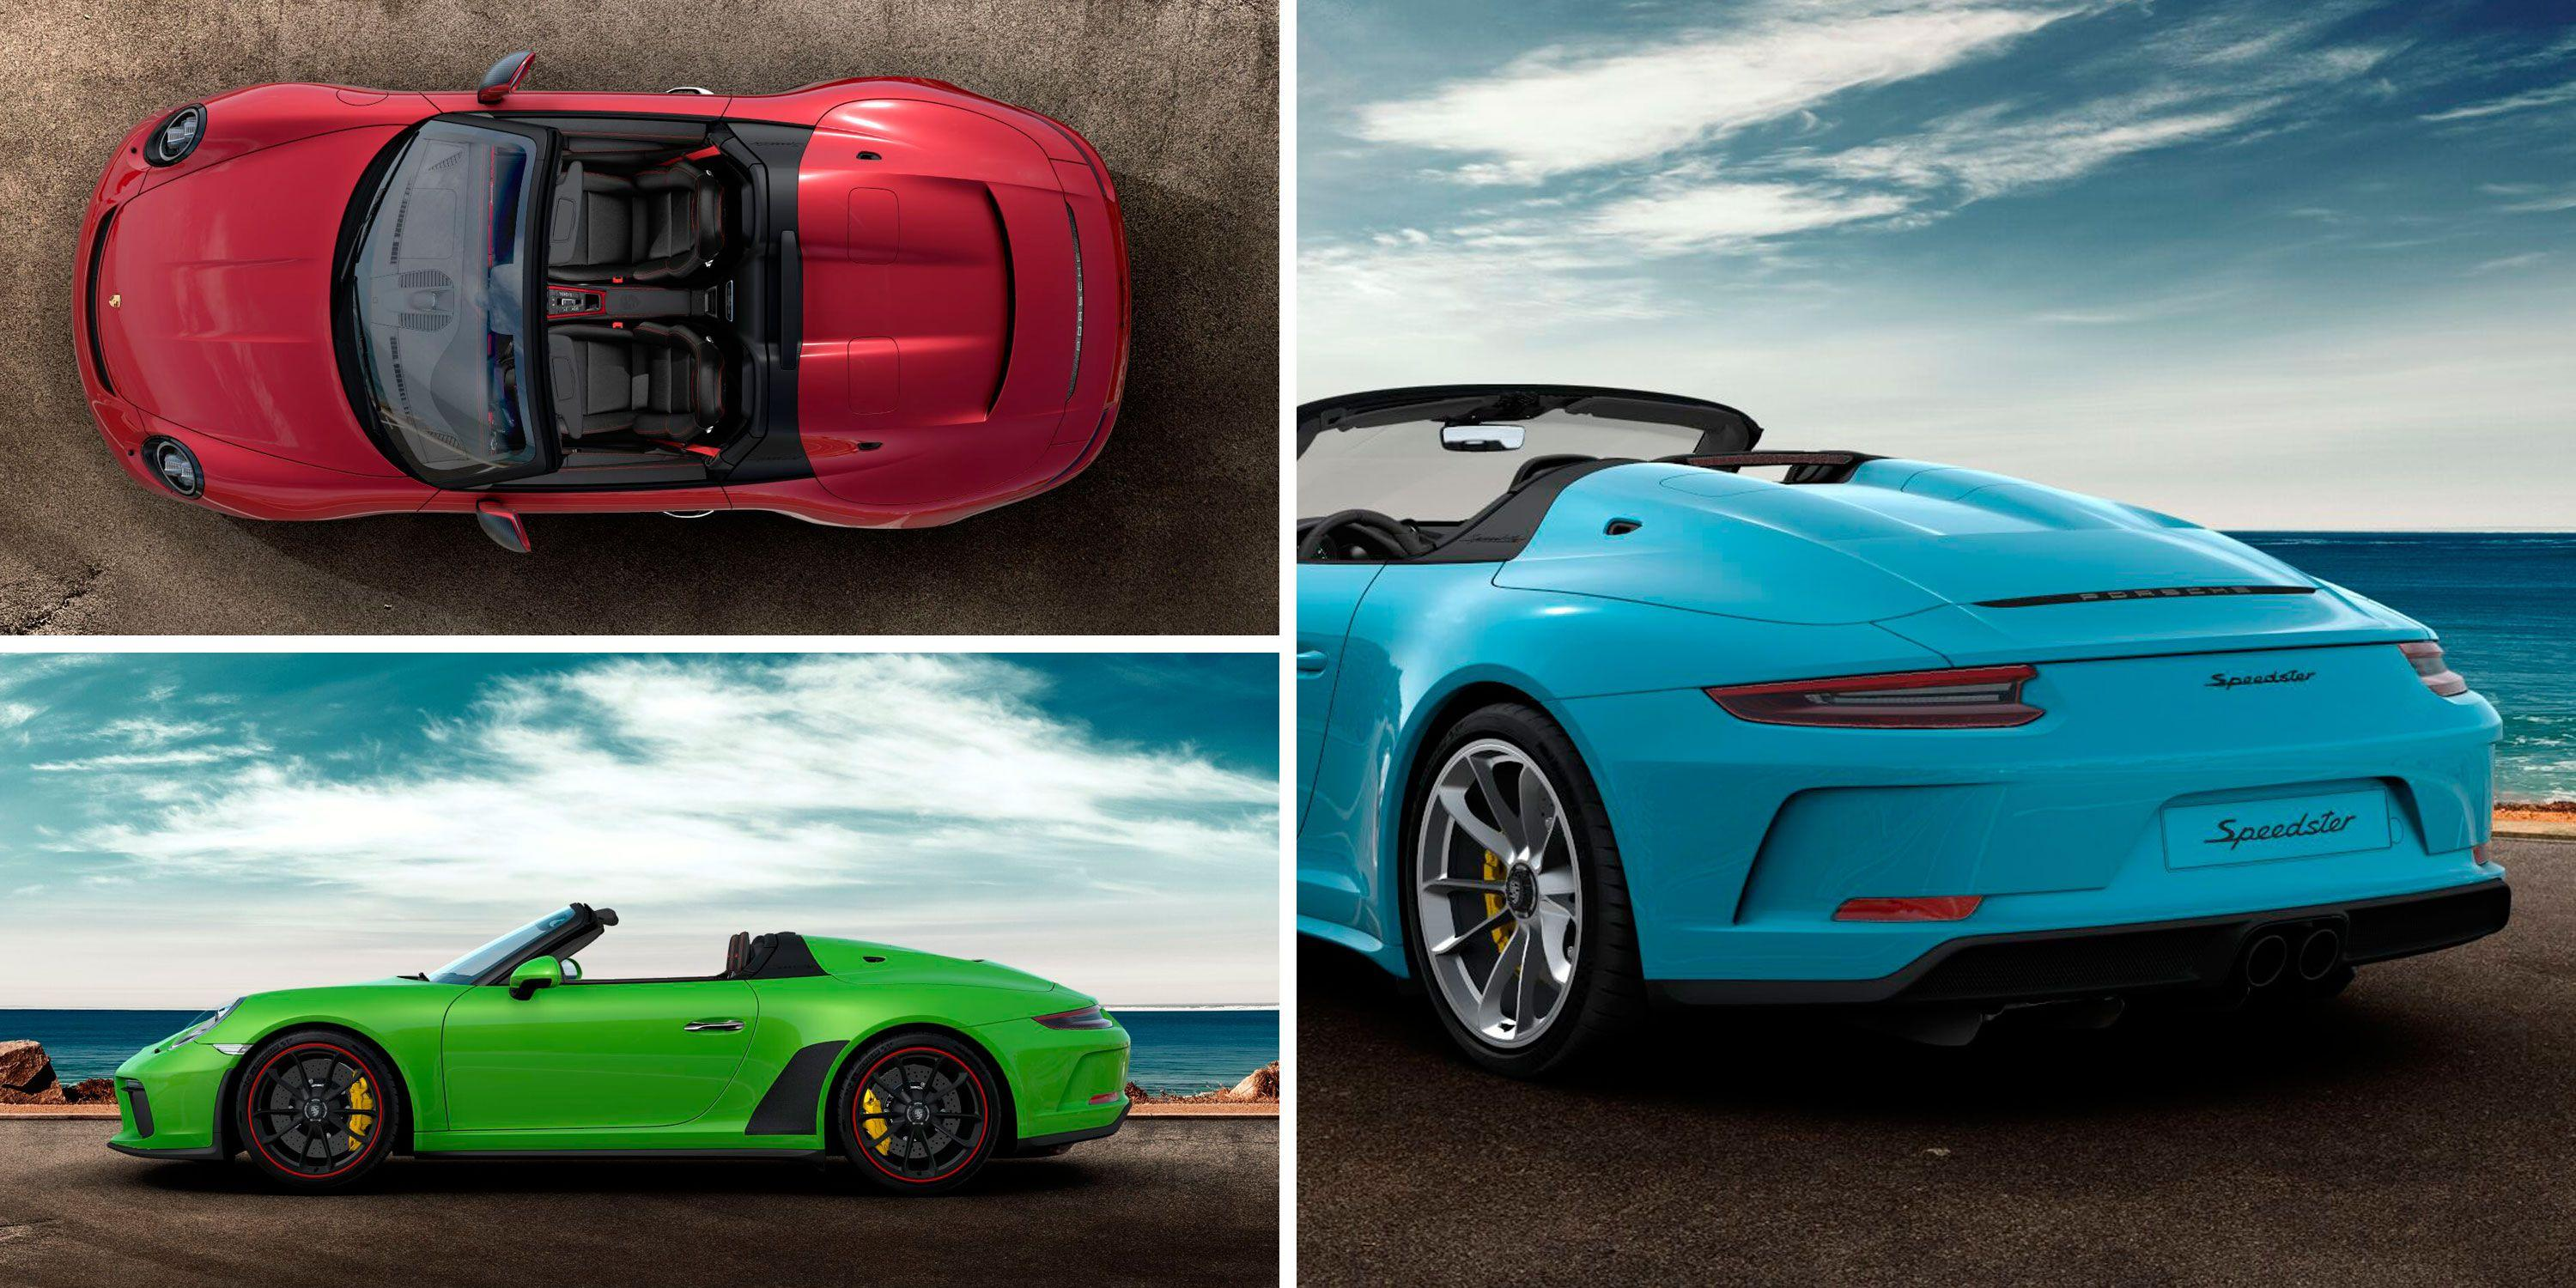 """<p><a href=""""https://www.caranddriver.com/news/a27170789/2019-porsche-911-speedster-photos-info/"""" rel=""""nofollow noopener"""" target=""""_blank"""" data-ylk=""""slk:Porsche's 911 Speedster"""" class=""""link rapid-noclick-resp"""">Porsche's 911 Speedster</a> is here, and like its humpbacked forebears, it's eye-catching. It also costs an eye-watering $275,750-far more than a base, $92,350 911 Carrera and more than every other 911 variant save for the 700-hp 911 GT2 RS. Naturally, few of us (okay, none of us, at least here) can afford such an extravagance, and that's assuming the 1948 lucky examples slated for production haven't been spoken for already. So, in a clearly unhealthy effort to satiate our Speedster fantasies, we took to Porsche's freshly minted online configurator to build a few unique versions of the specialest modern 911. </p><p>Click through to see how <em>Car and Driver</em> editors Eric Stafford, Drew Dorian, Daniel Golson, Mike Magrath, and Alexander Stoklosa would build out their Speedsters-at least in their dreams. </p>"""